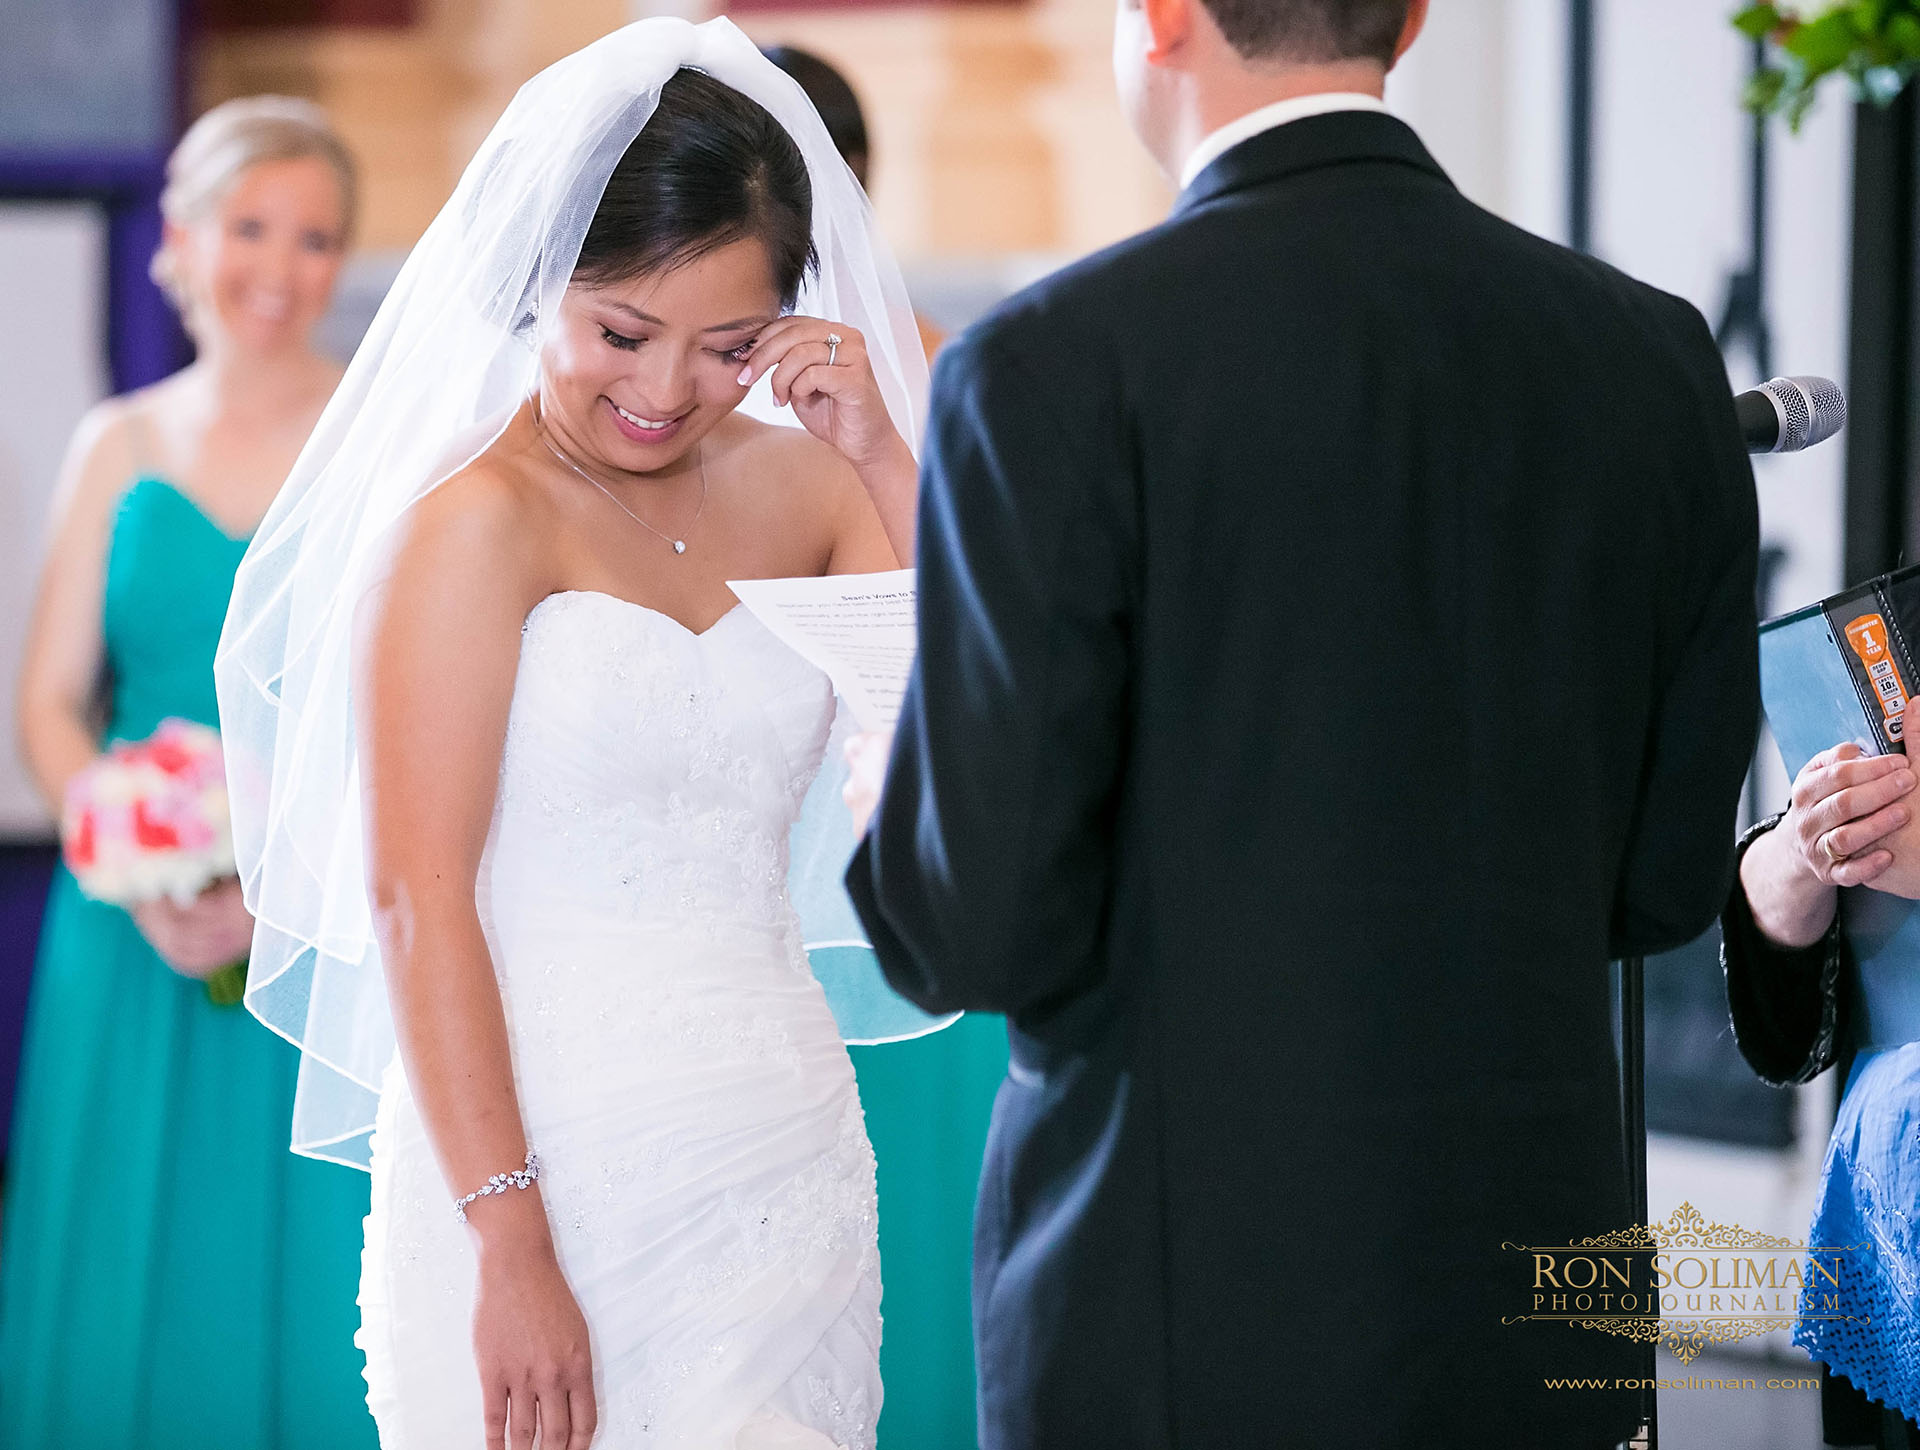 Best Wedding photos in Philadelphia